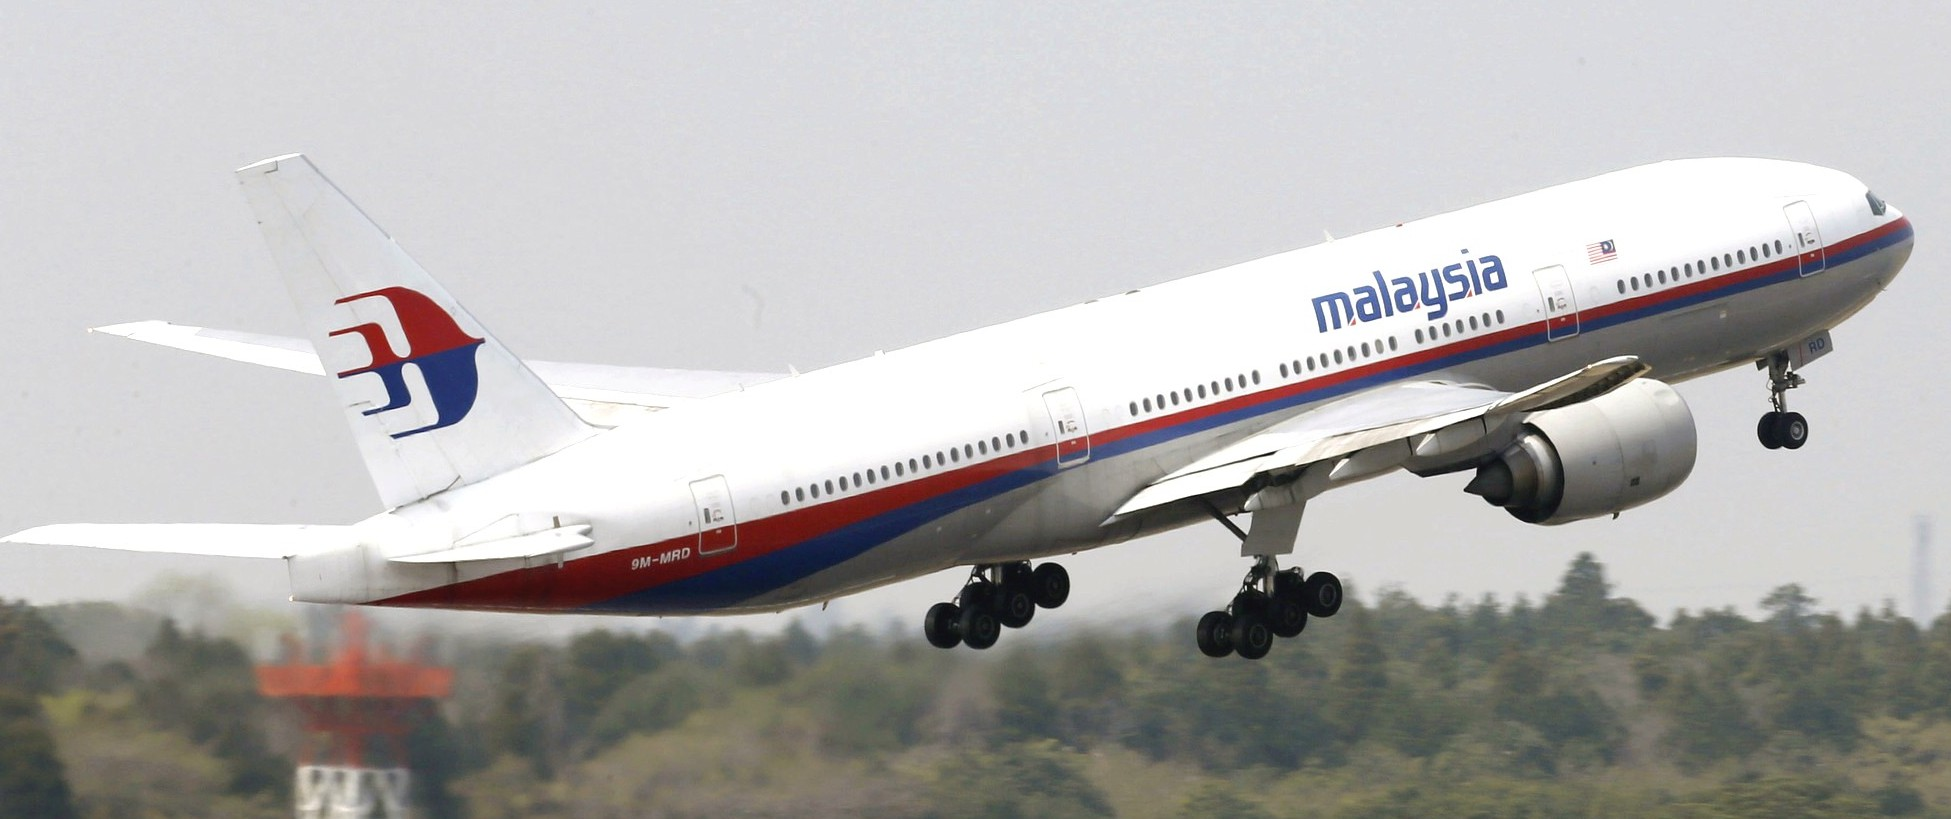 Malaysia Plane Missing